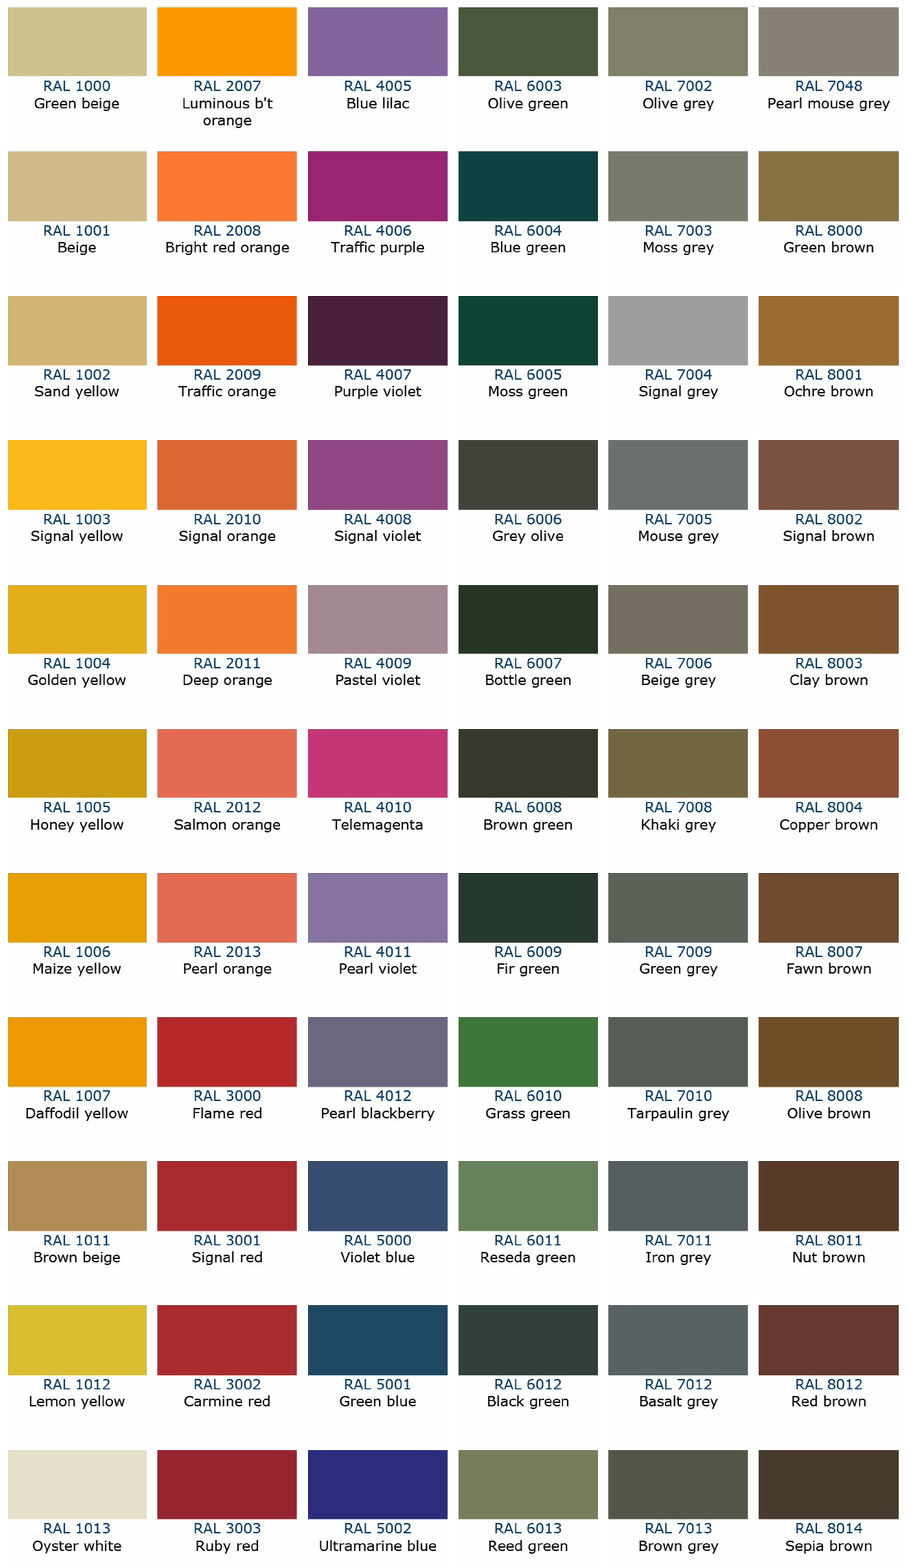 Chugoku marine paint color chart paint color ideas ral mun color chart choice image free any examples nvjuhfo Images